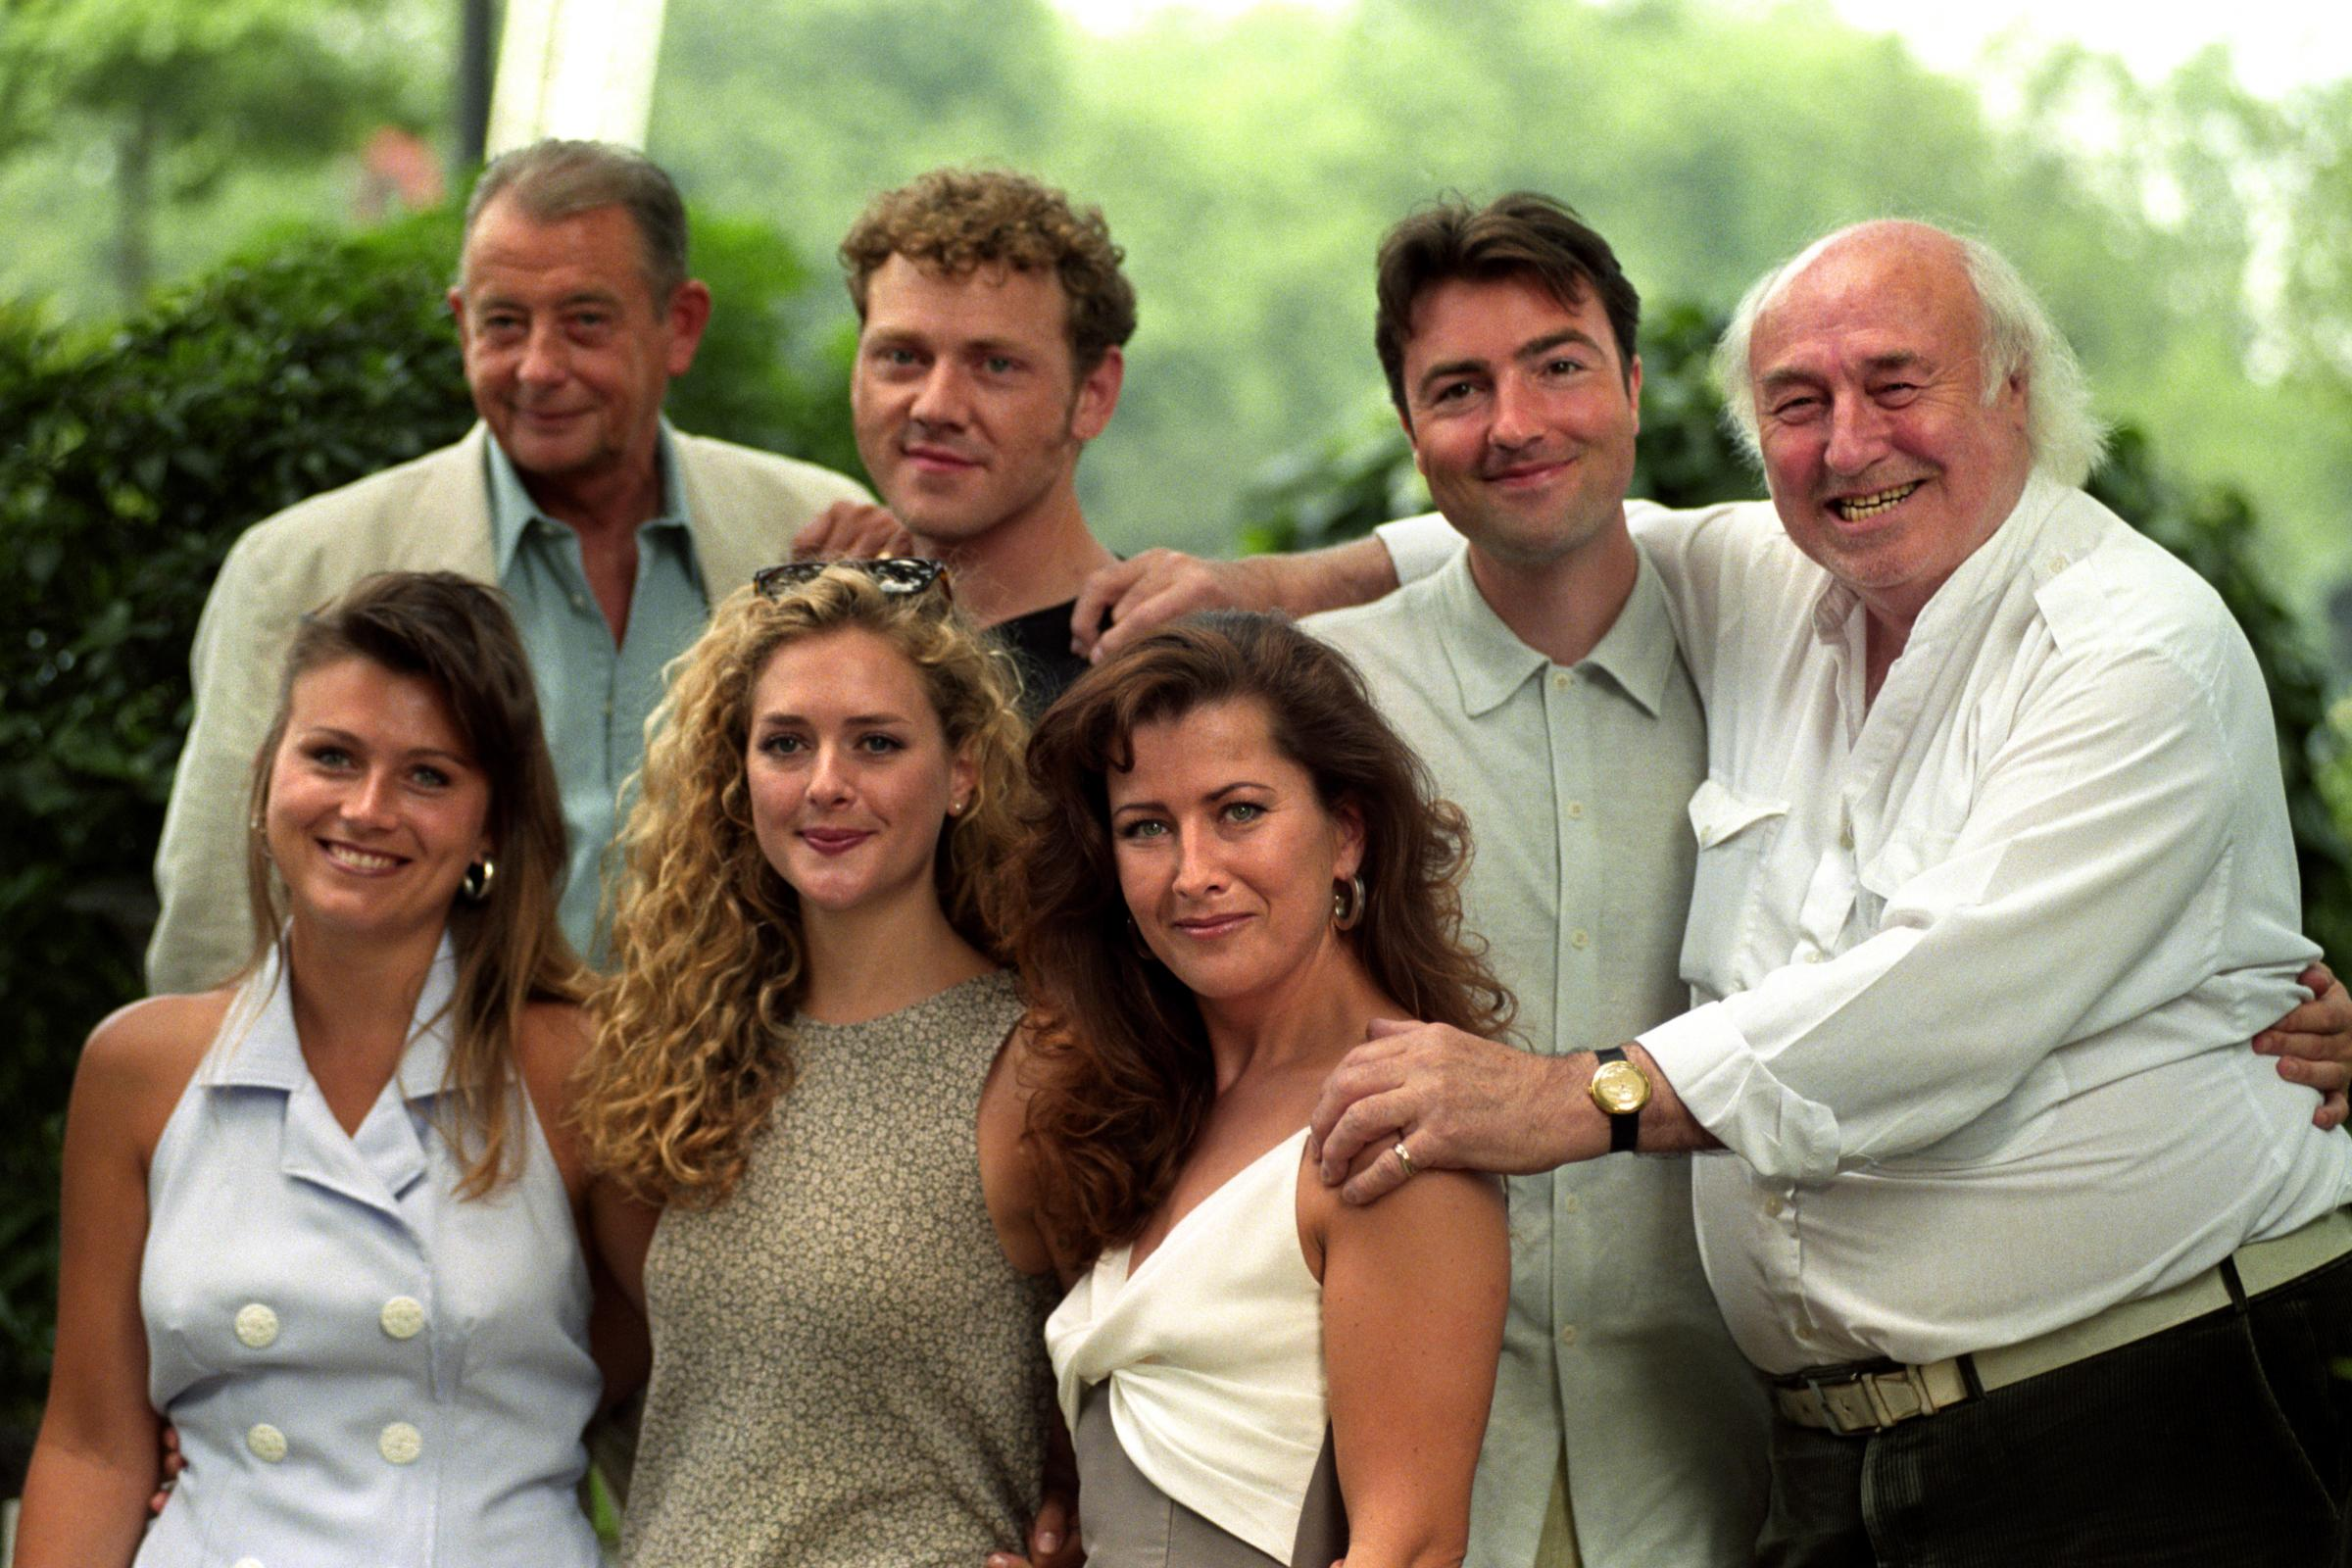 Heartbeat cast, top from left, Derek Fowlds (Sgt Blaketon), Mark Jordon (PC Bellamy), Nick Berry (PC Nick Rowan), and Bill Maynard (Claude Jeremiah Greengrass). Front row, from left, is Tricia Penrose (Barmaid Gina), Juliette Gruber (Jo Weston) and Kazia